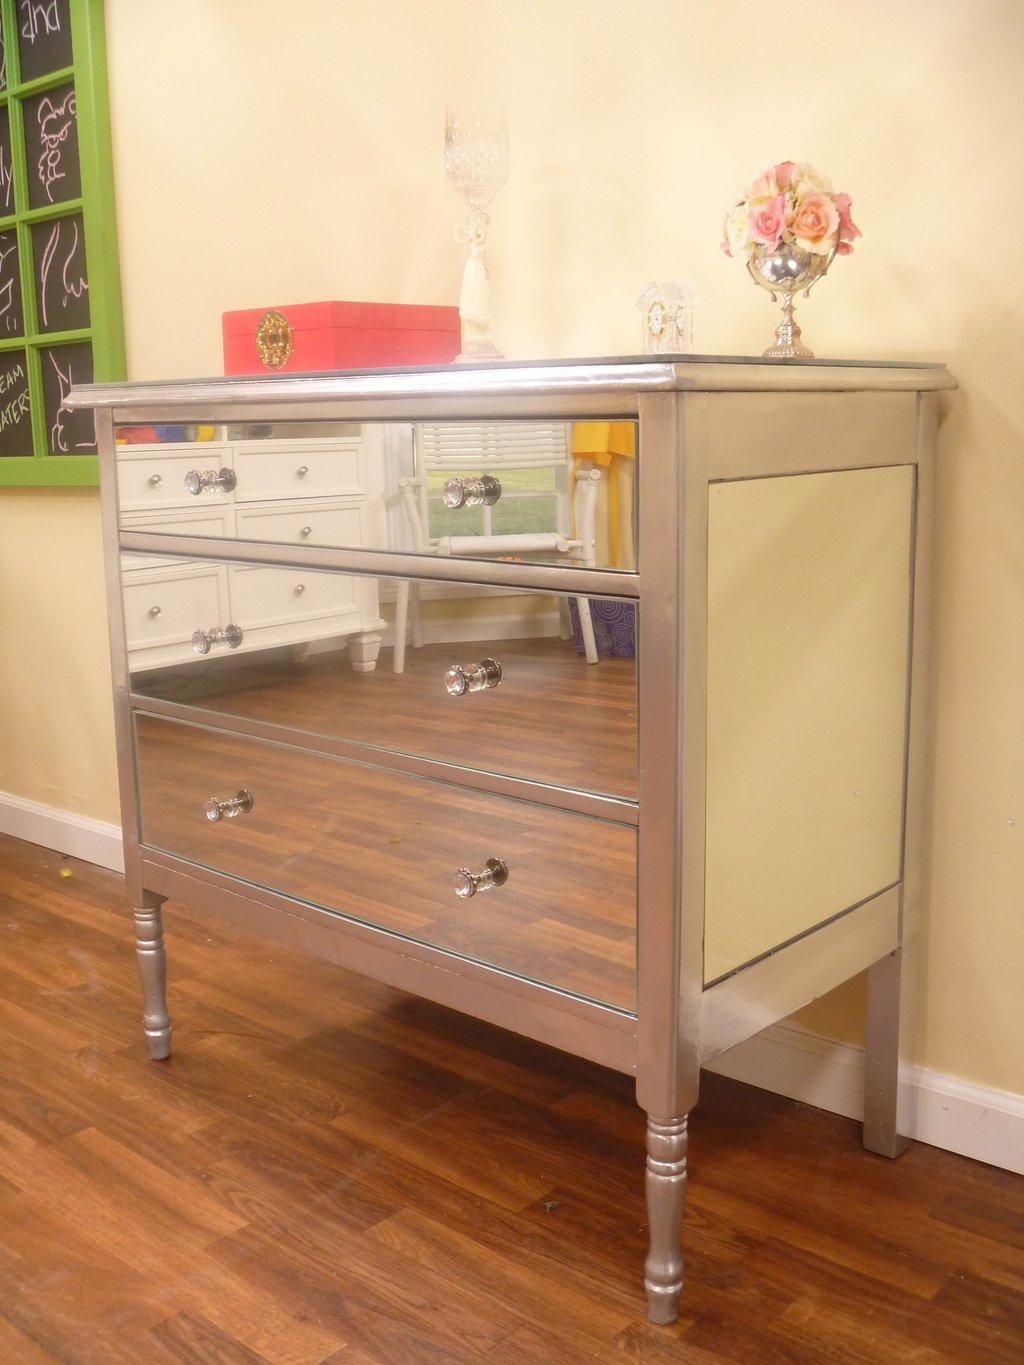 Diy Mirrored Dresser Spray Painting Rust Spray Create Dressing Table With Mirrored Dresser